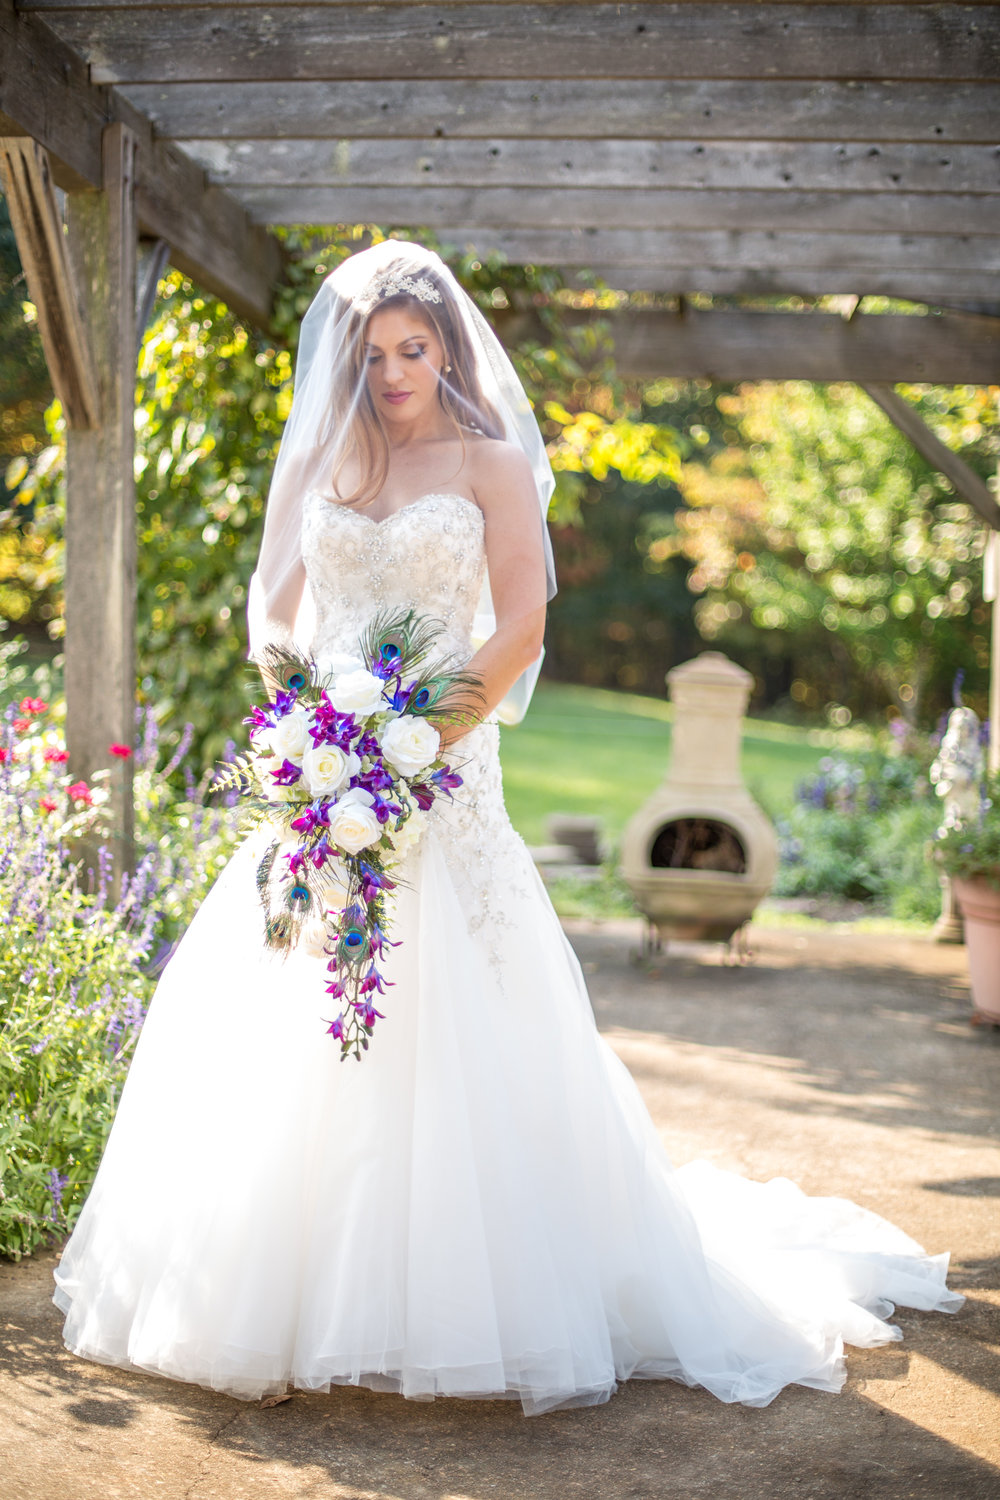 Illusions and Richard Designs - We offer a variety of veils, headpieces, combs, headbands, belts, jewelry, and shoes allowing all brides to perfect their bridal ensemble.  We carry different designers for veils including Illusions and Richard Designs.